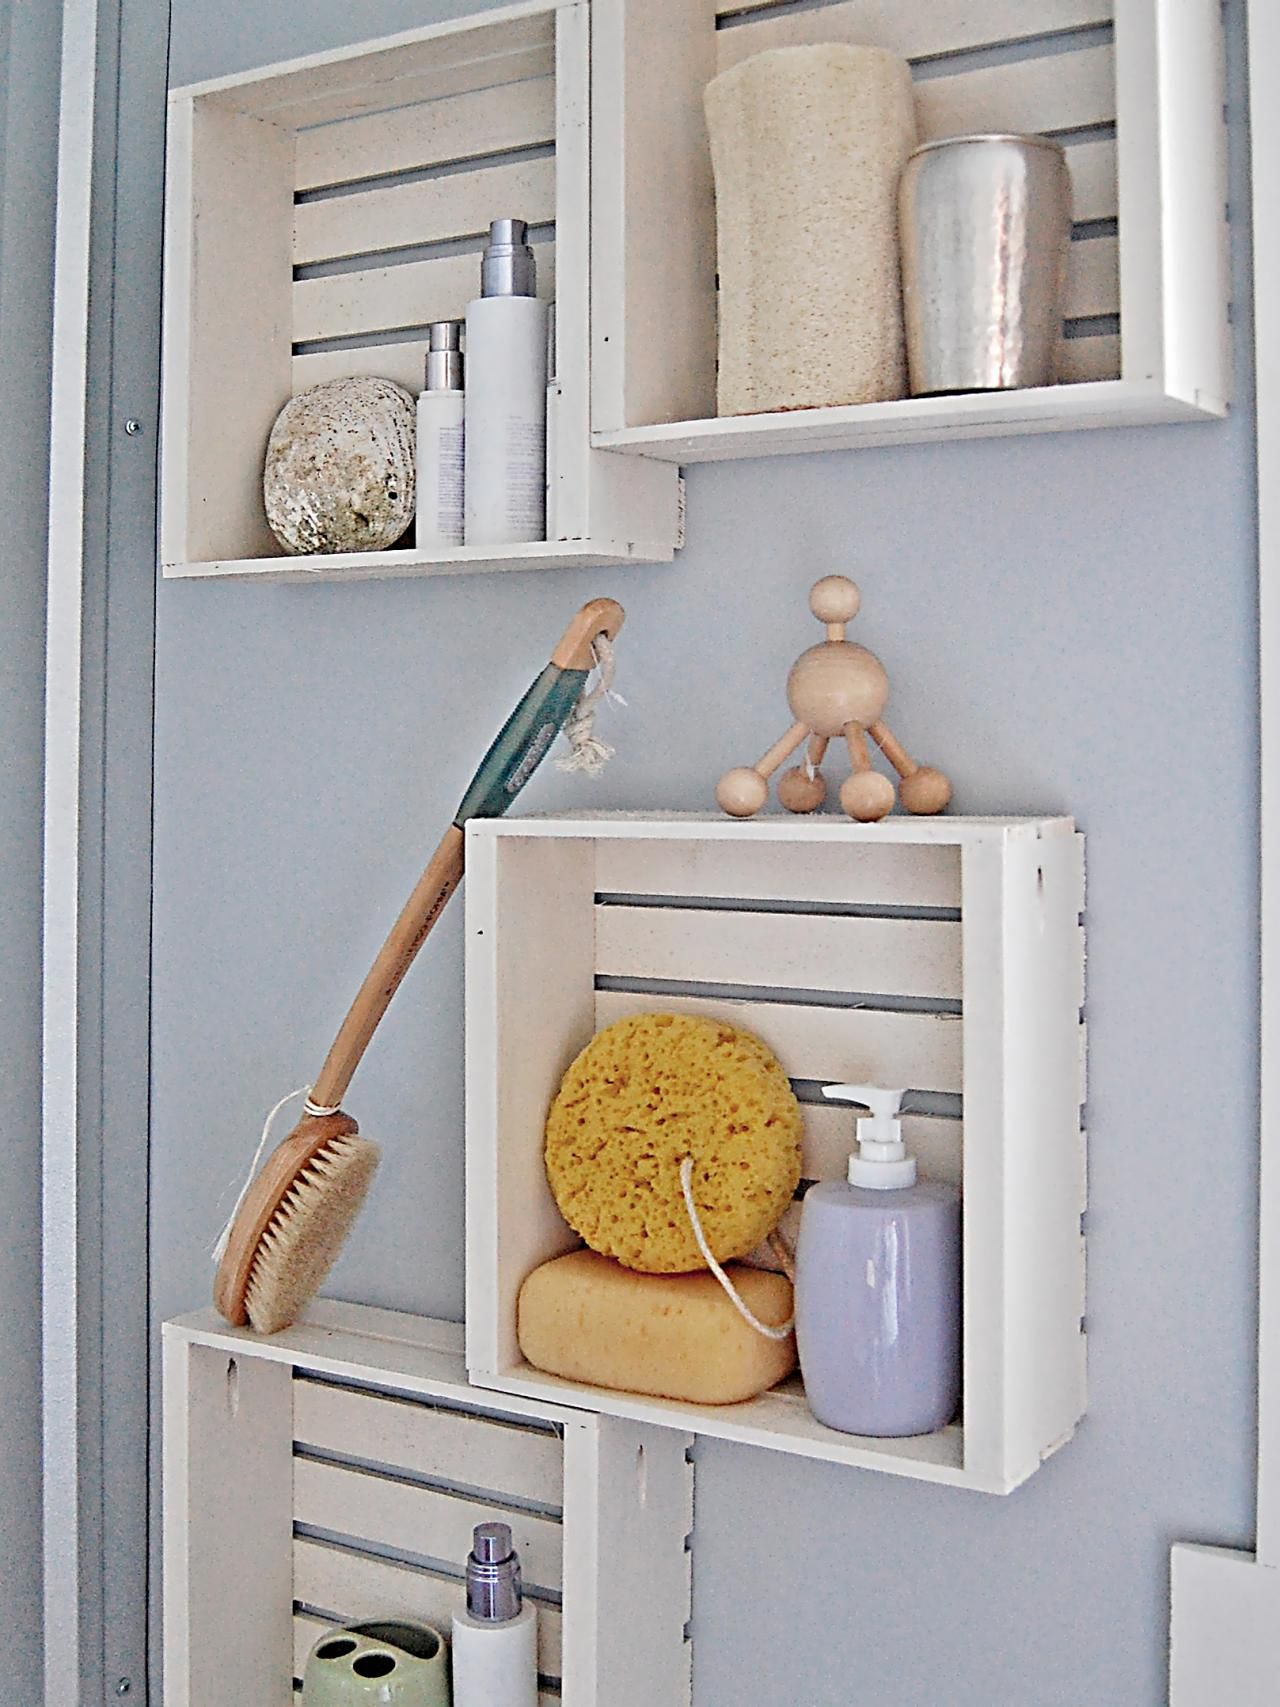 12 Clever Bathroom Storage Ideas Ideas For The House within size 1280 X 1707